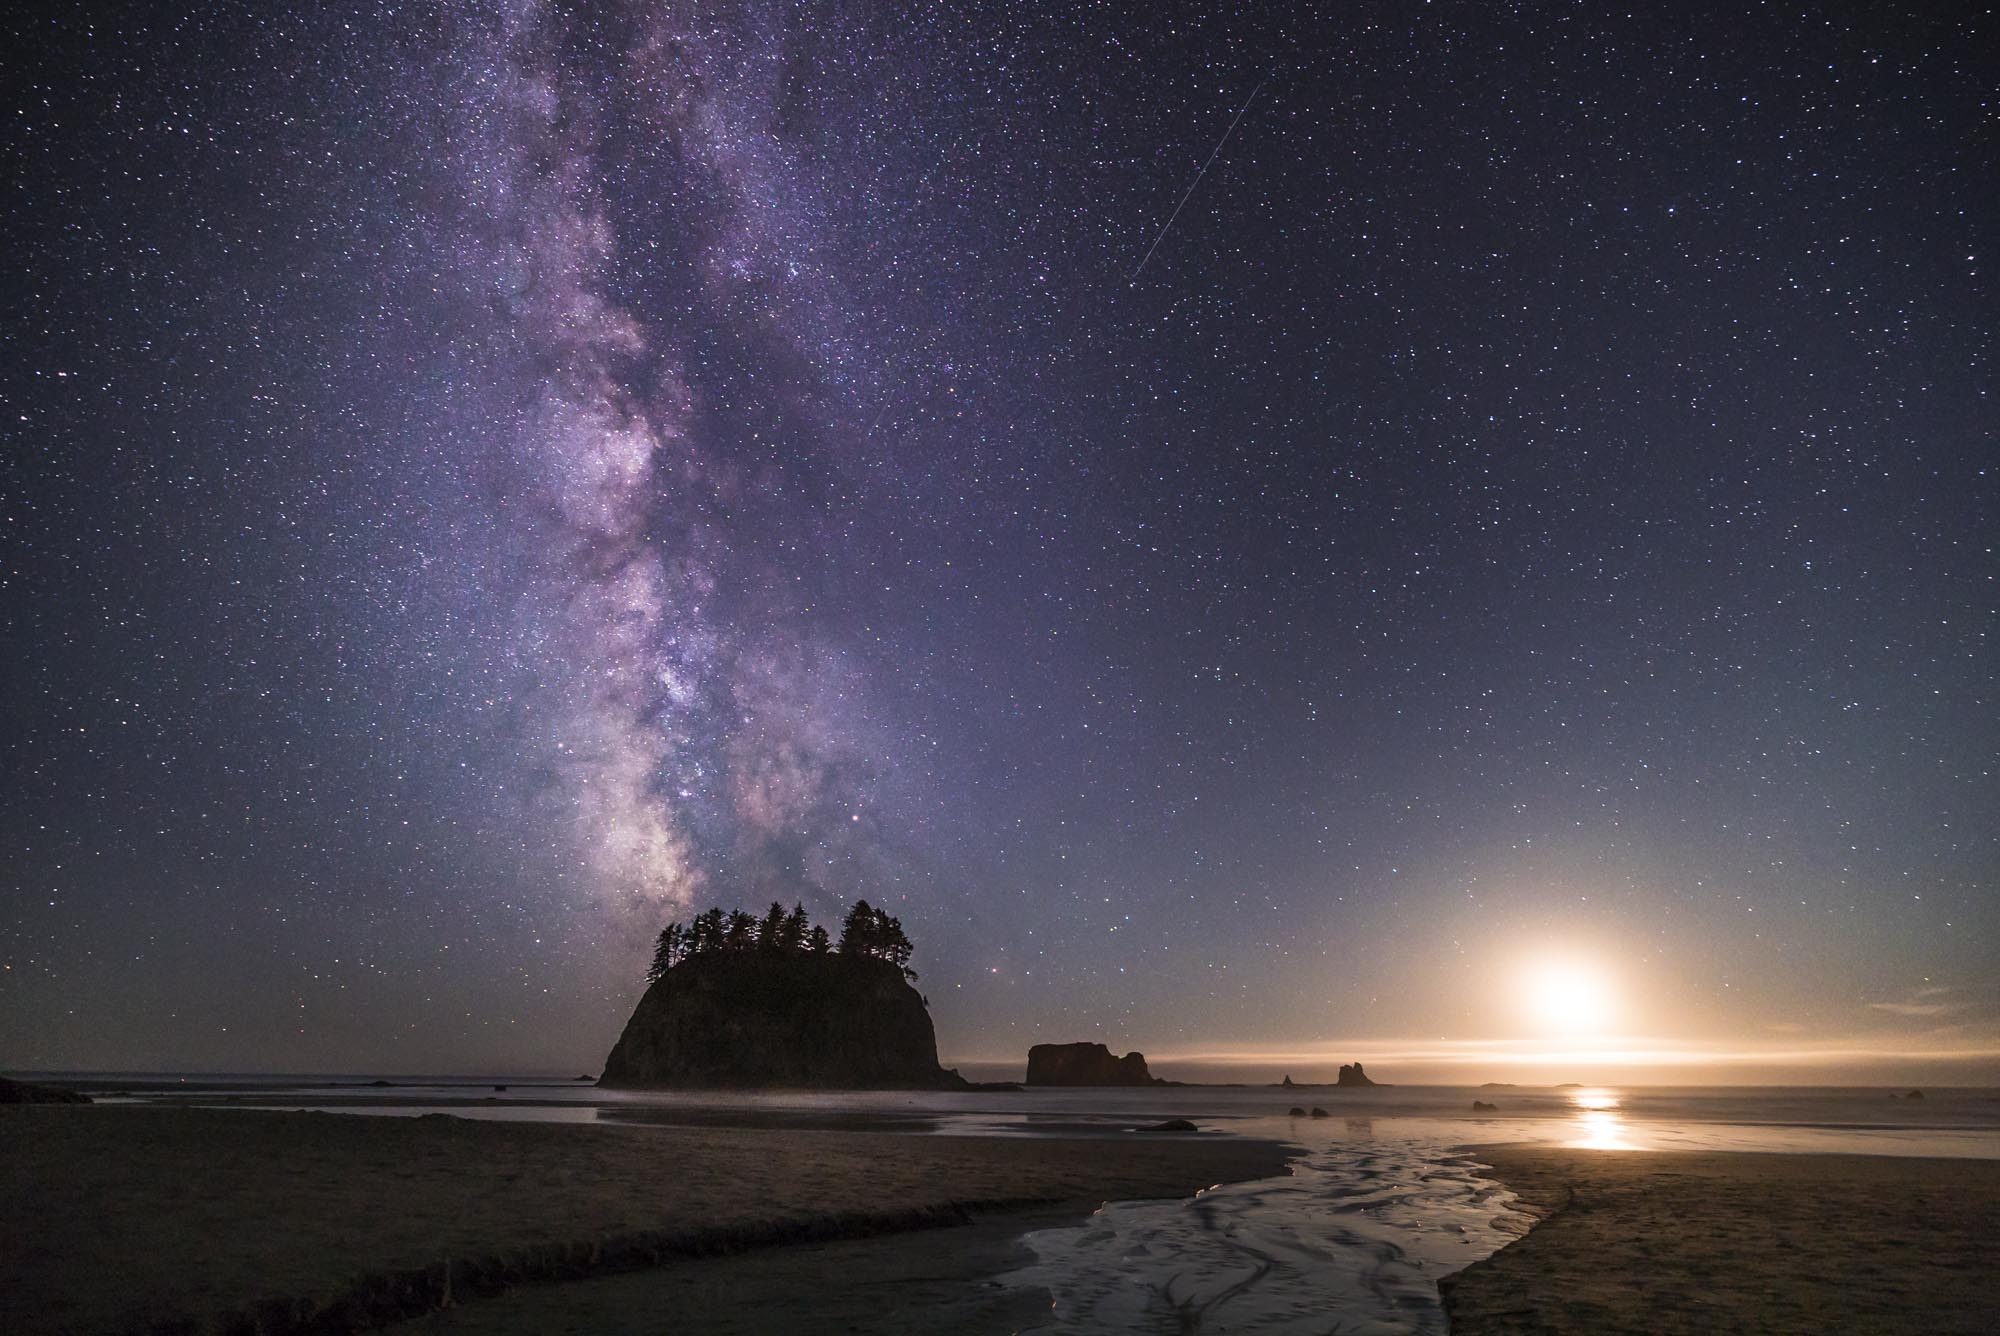 Second Beach in Olympic National Park at night.